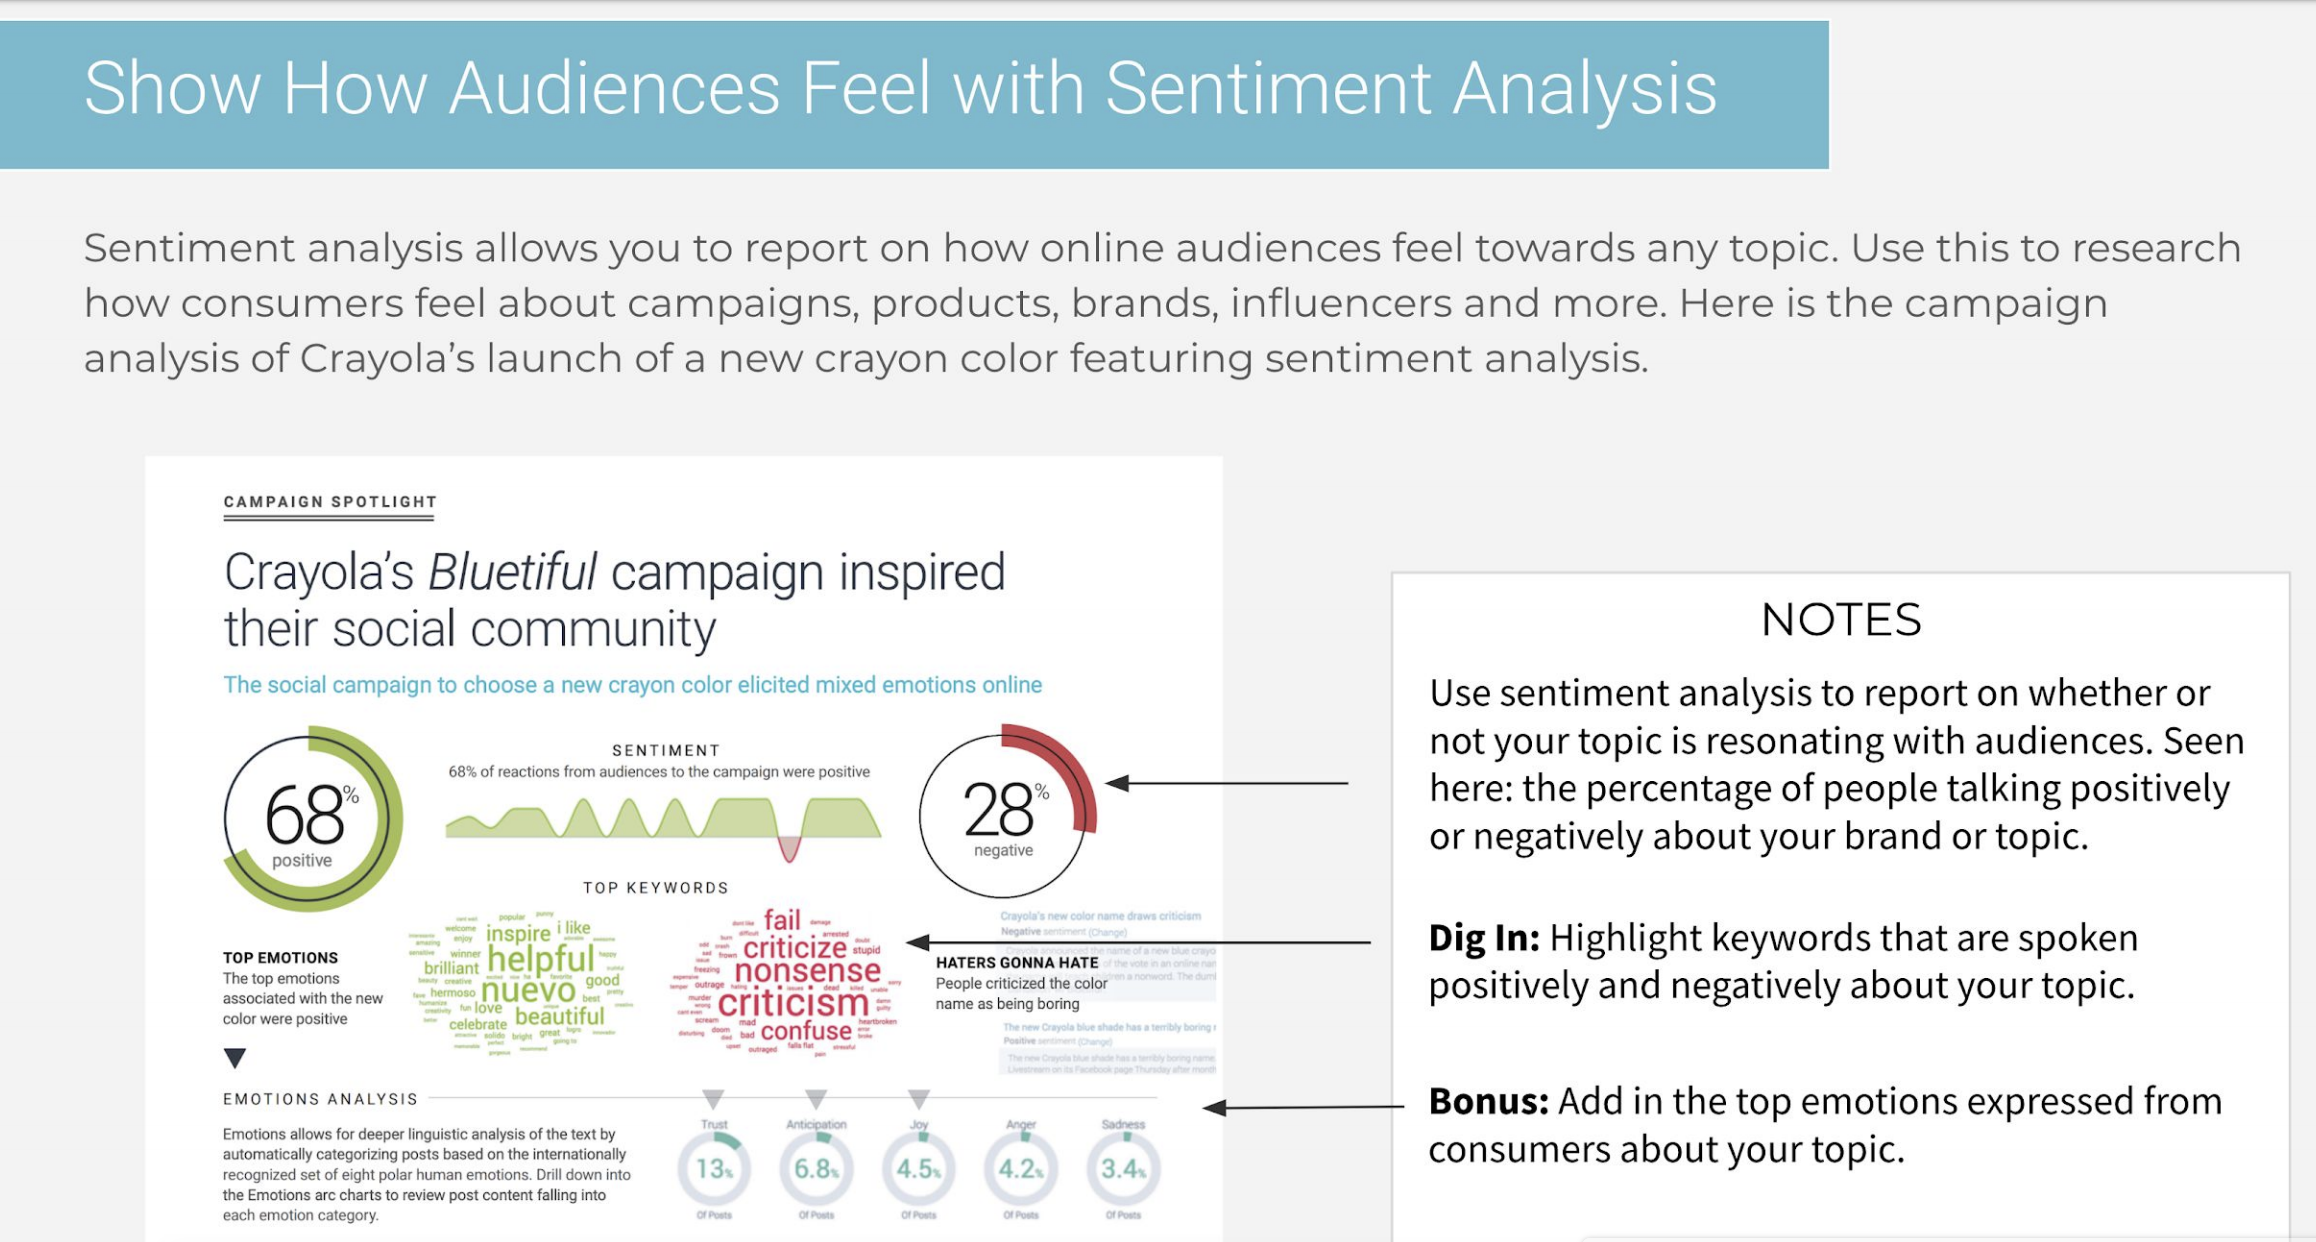 sentiment analysis of advertising campaign using social listening